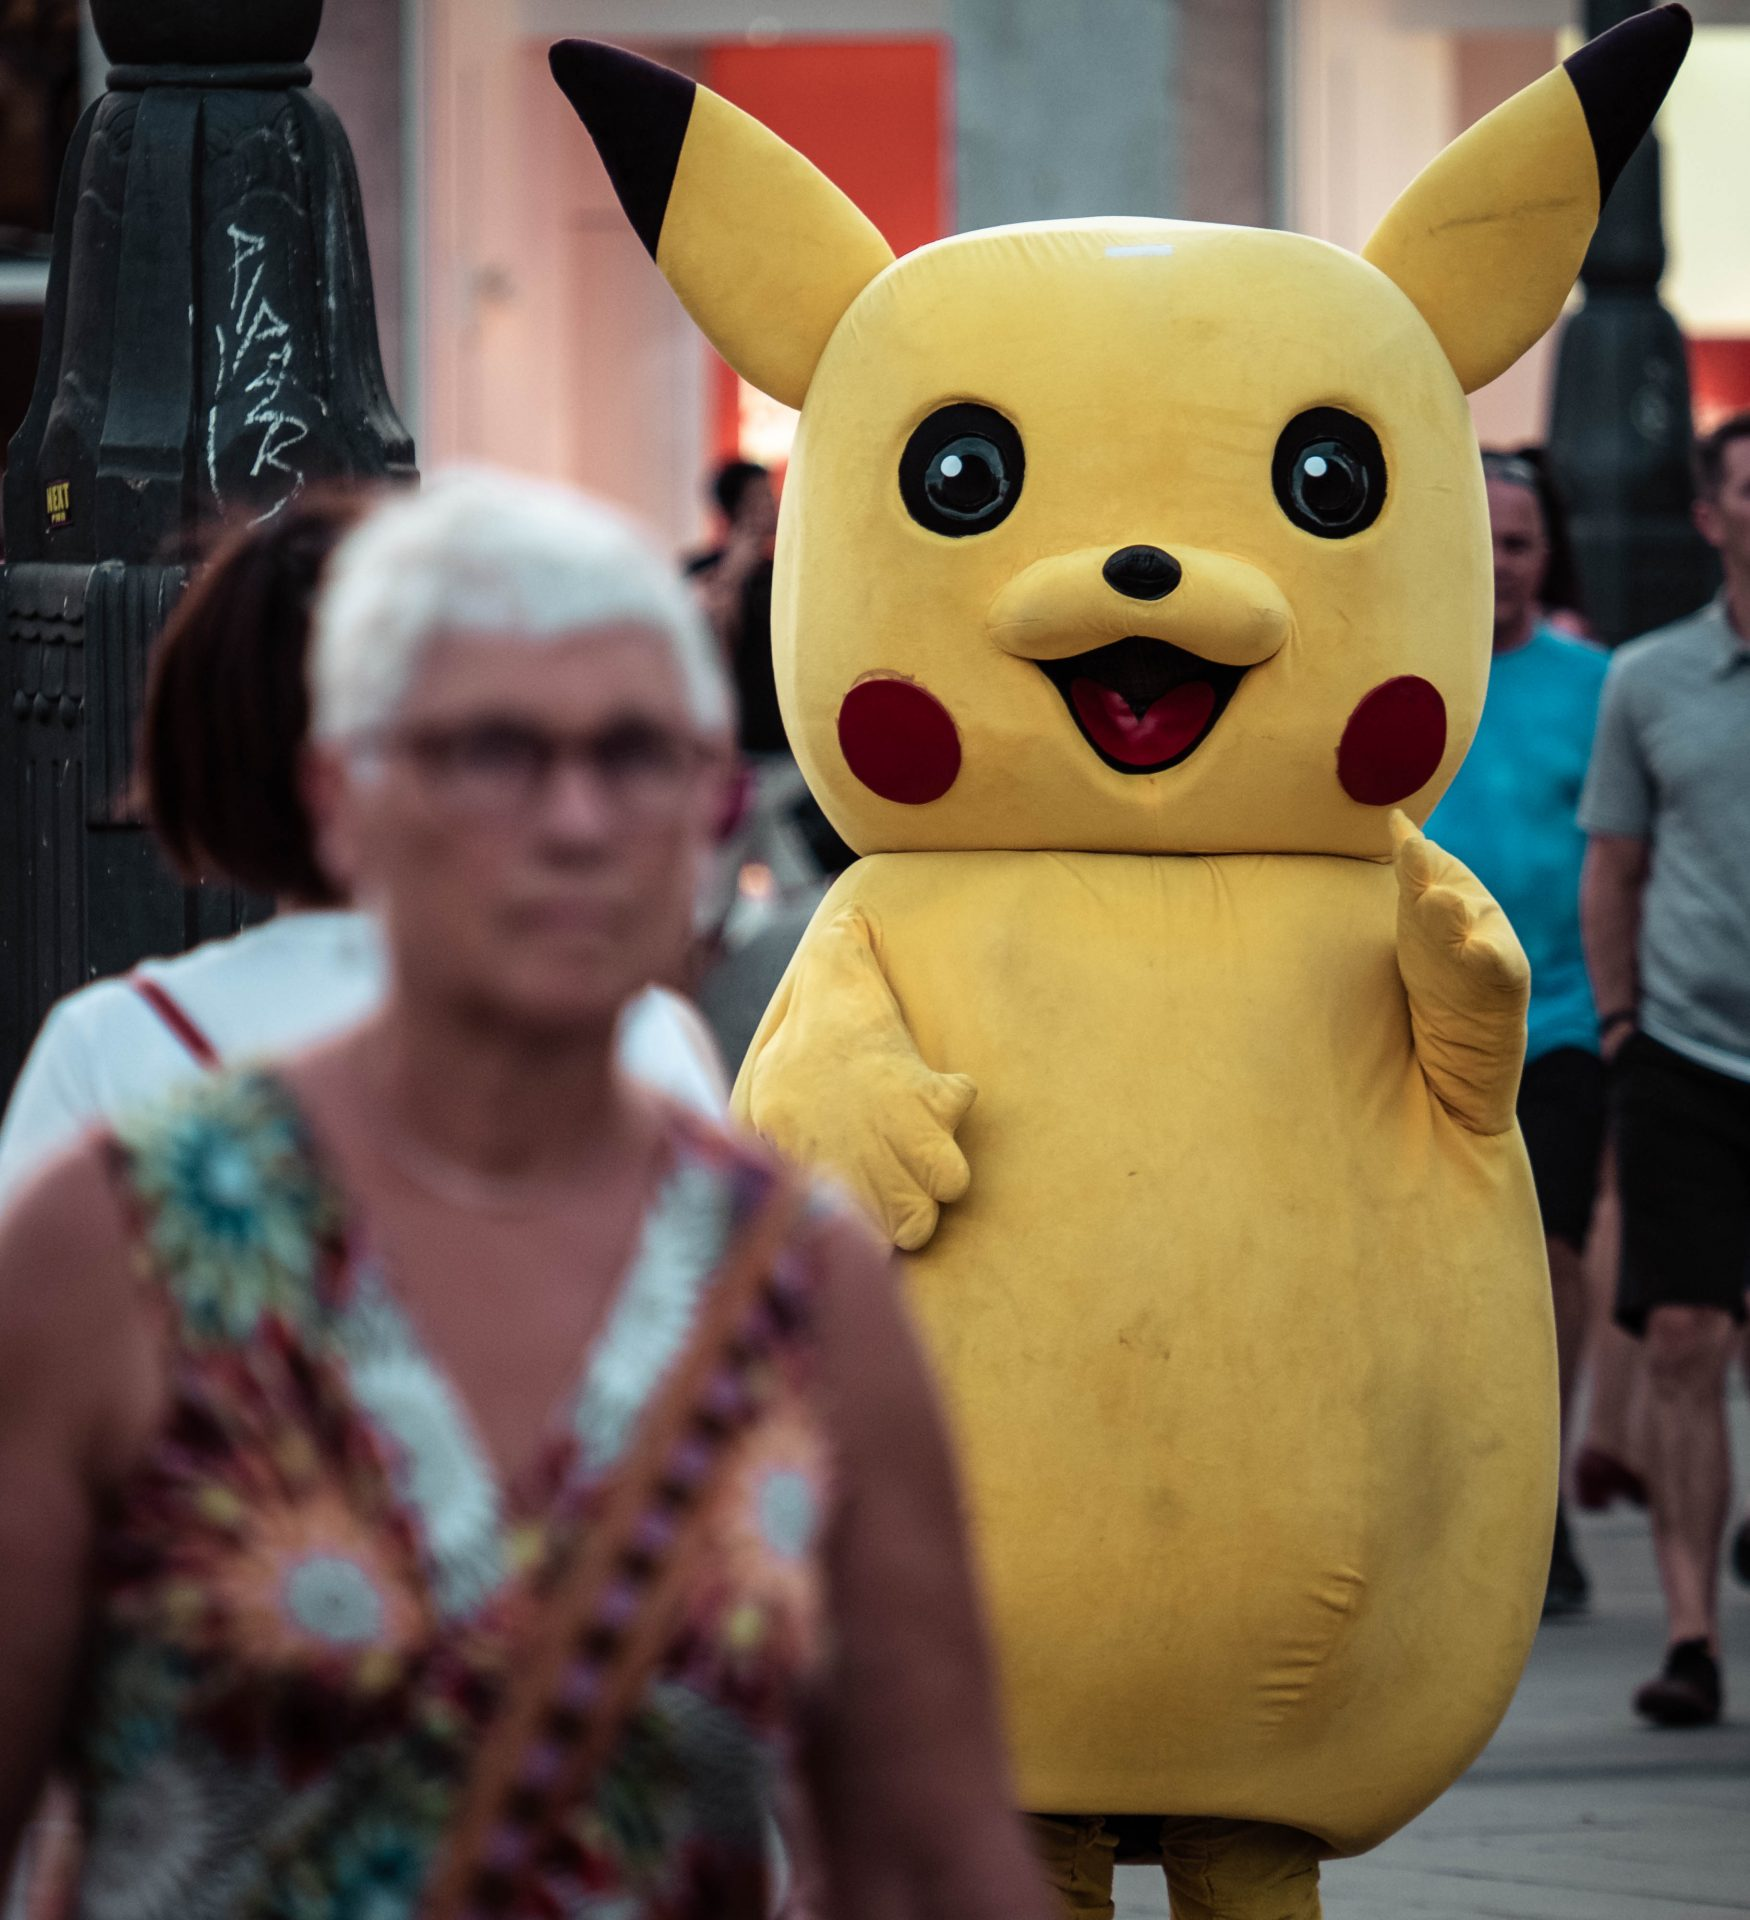 Older women walking in the street with Pikachu in the background photo by Jo Kassis